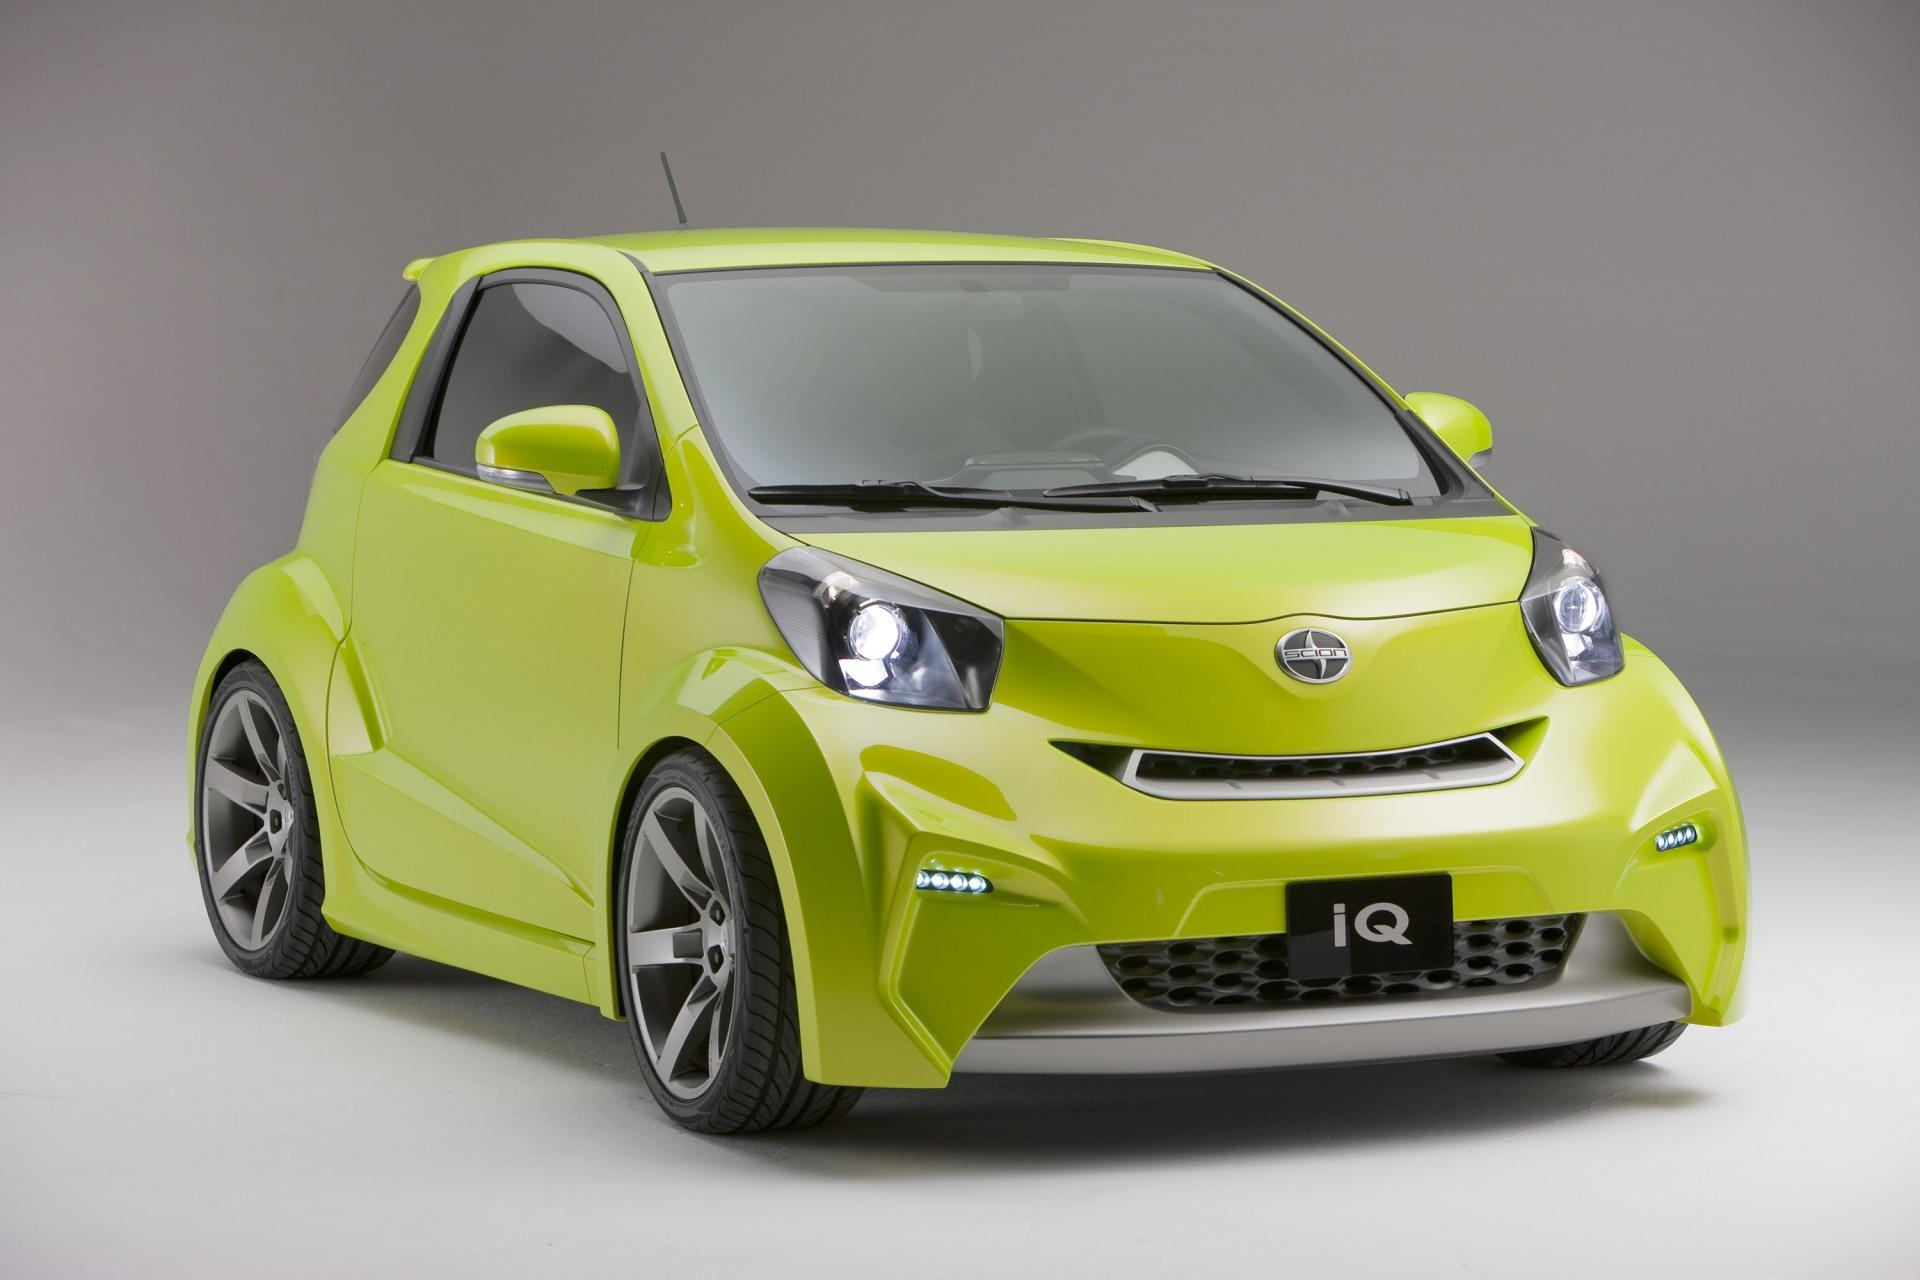 Ford Fiesta Roof Rack >> 2009 Scion iQ Concept Technical Specifications and data ...